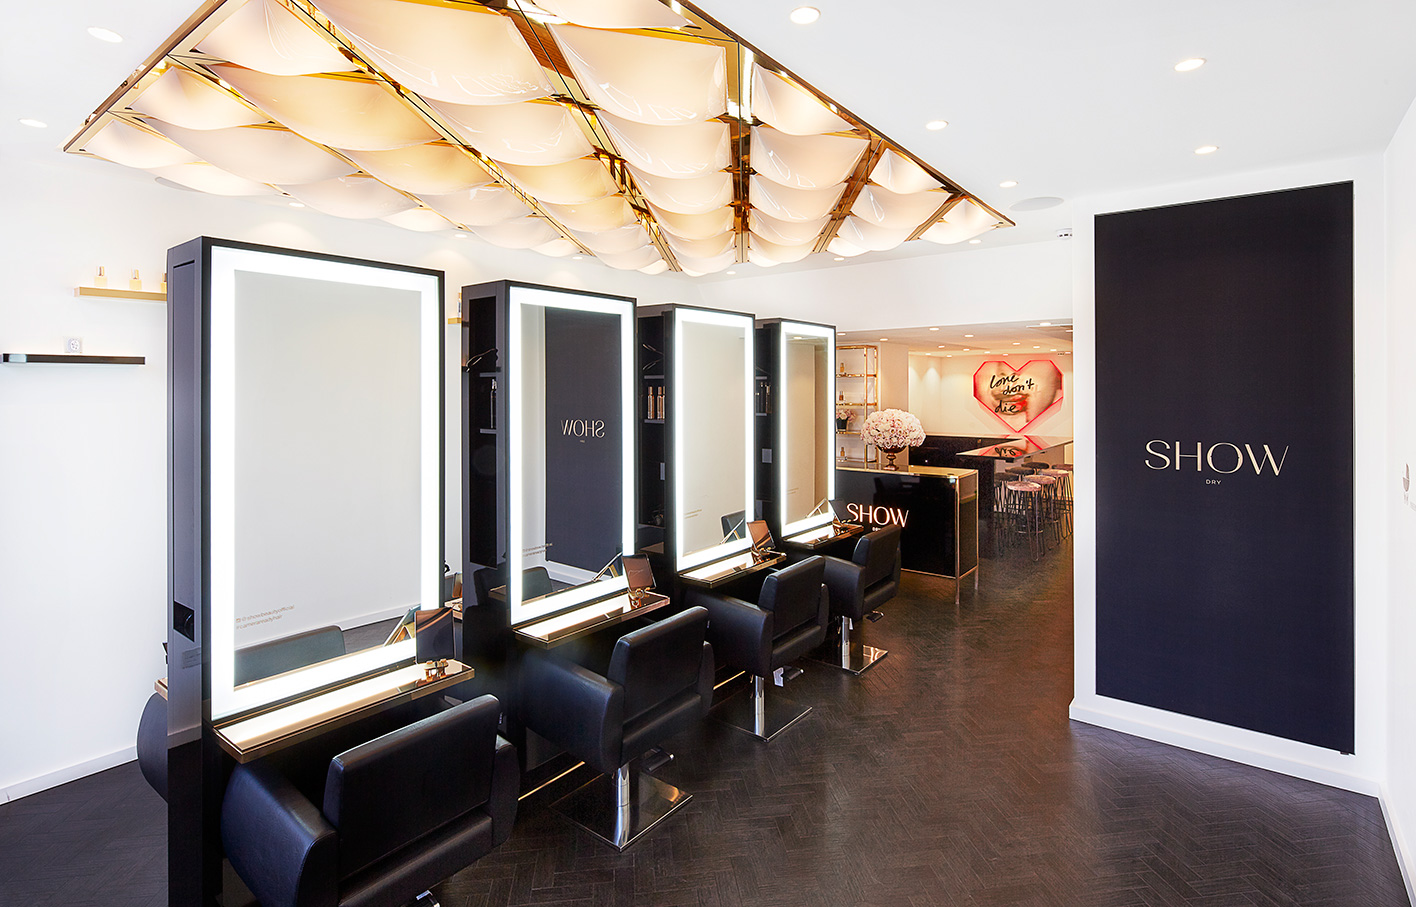 Aldworth James & Bond | SHOW Dry Wimbledon luxury salon interior